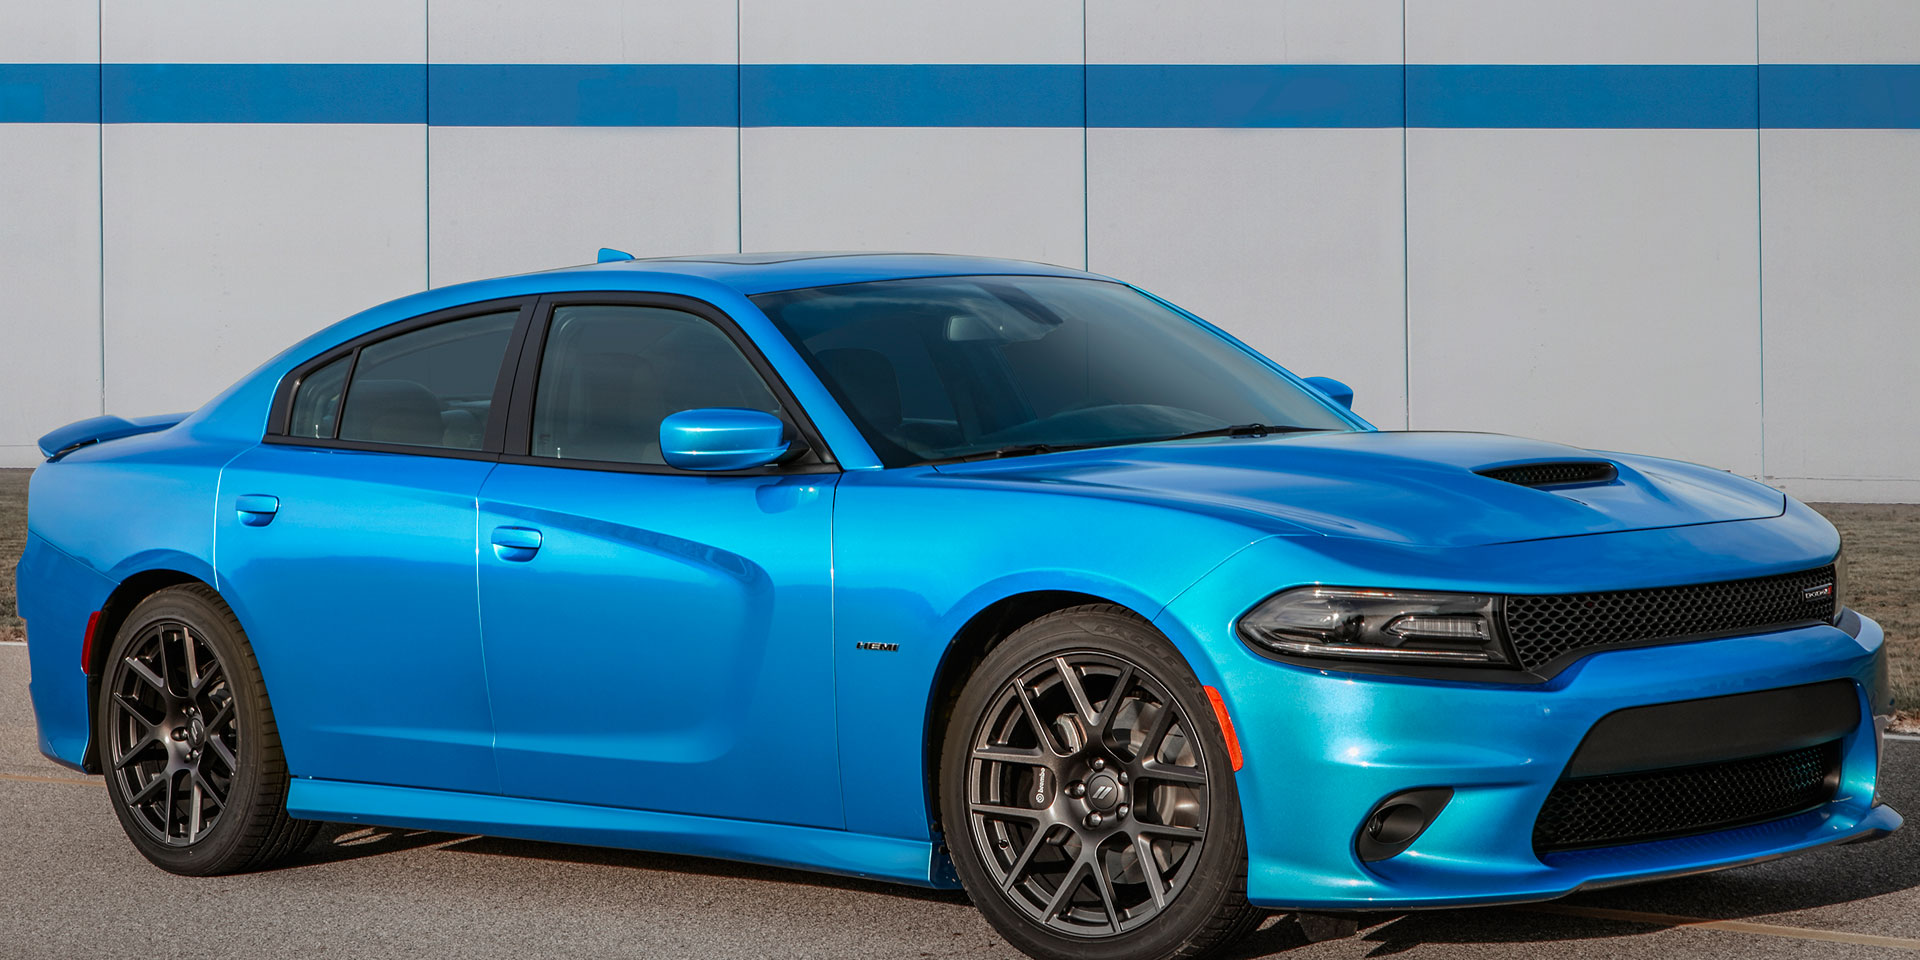 2019 - Dodge - Charger - Vehicles on Display | Chicago Auto Show